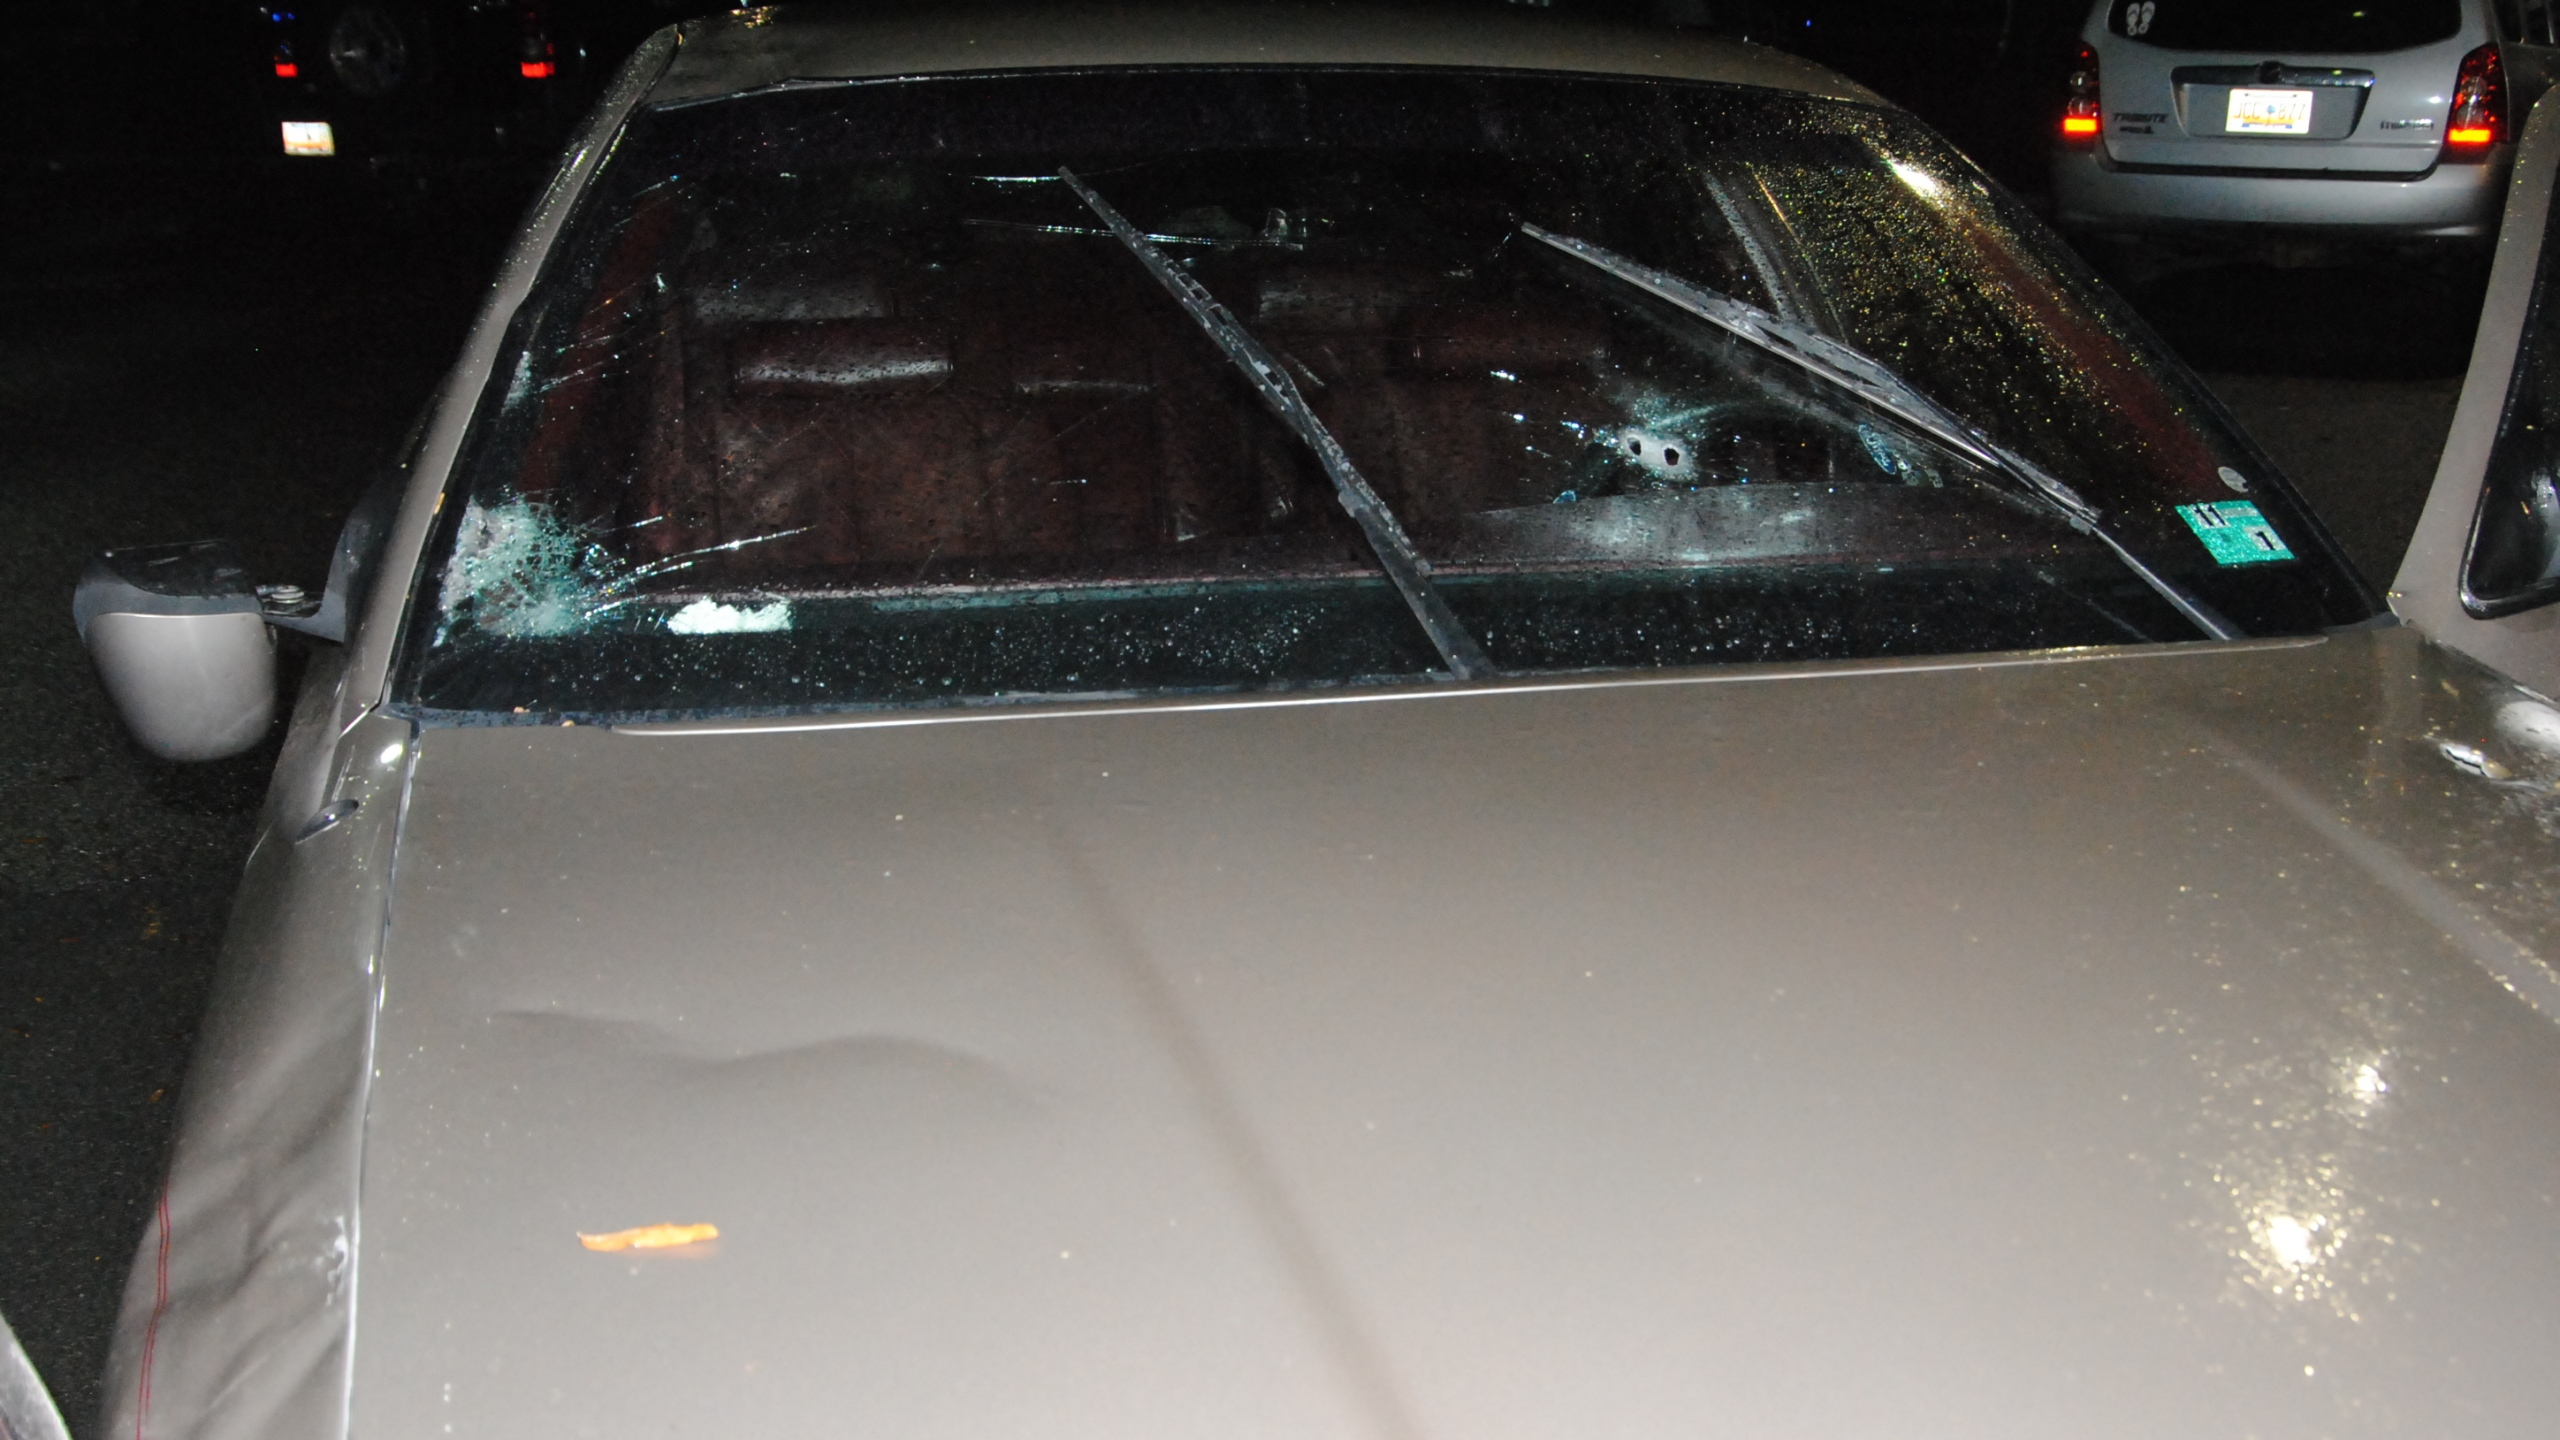 Photo of car Delvin Simmons was driving_153265